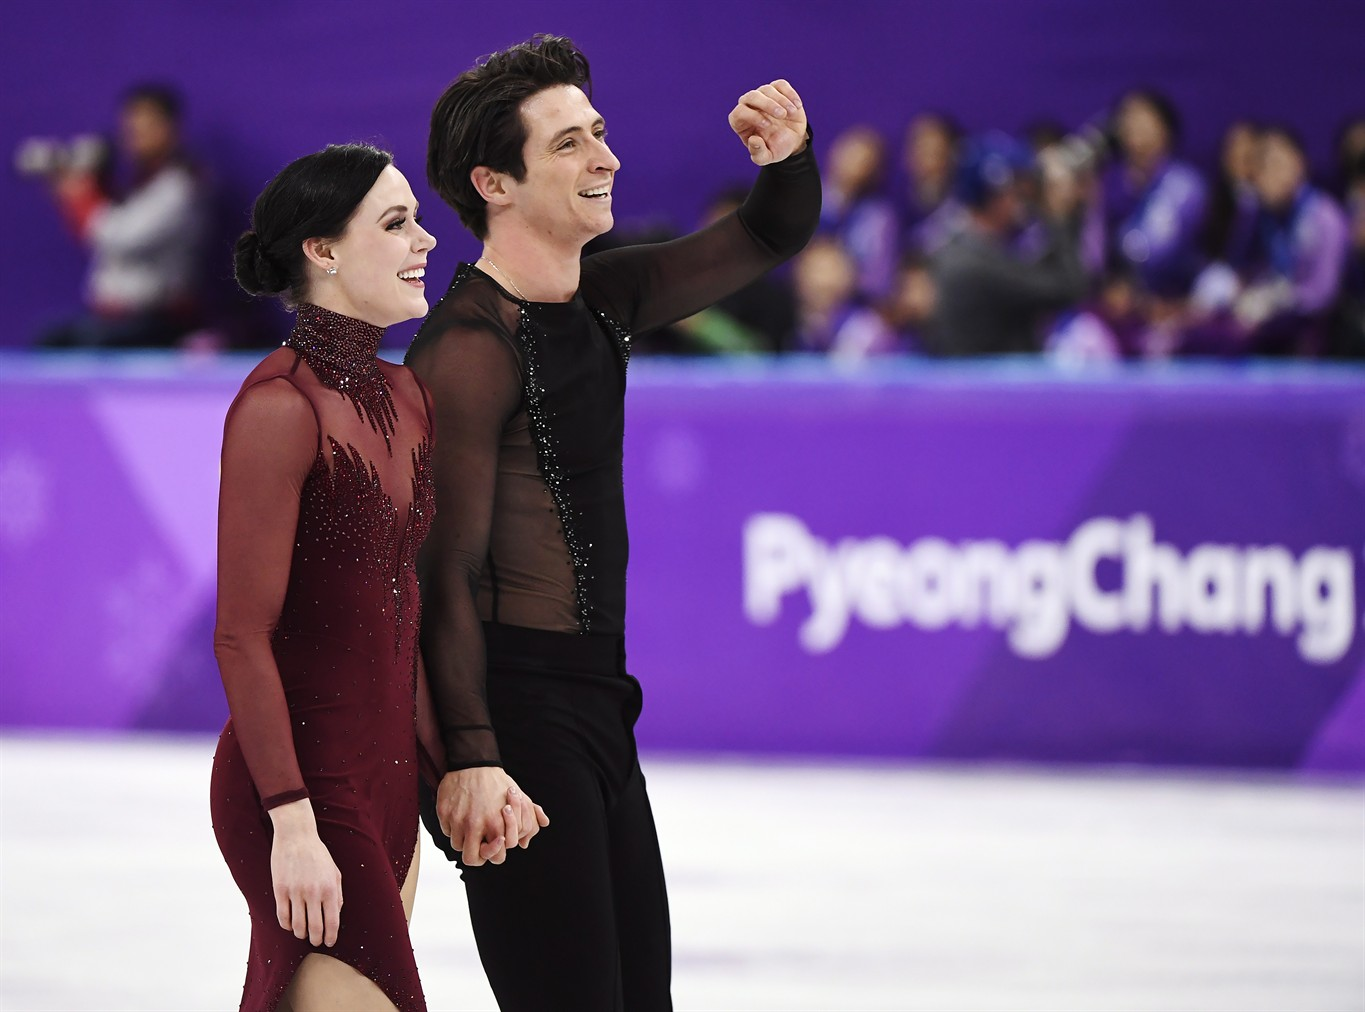 Tessa Virtue And Scott Moir Of Canada React Following The Ice Dance Figure Skating Free Dance At The Pyeongchang Winter Olympics Tuesday February